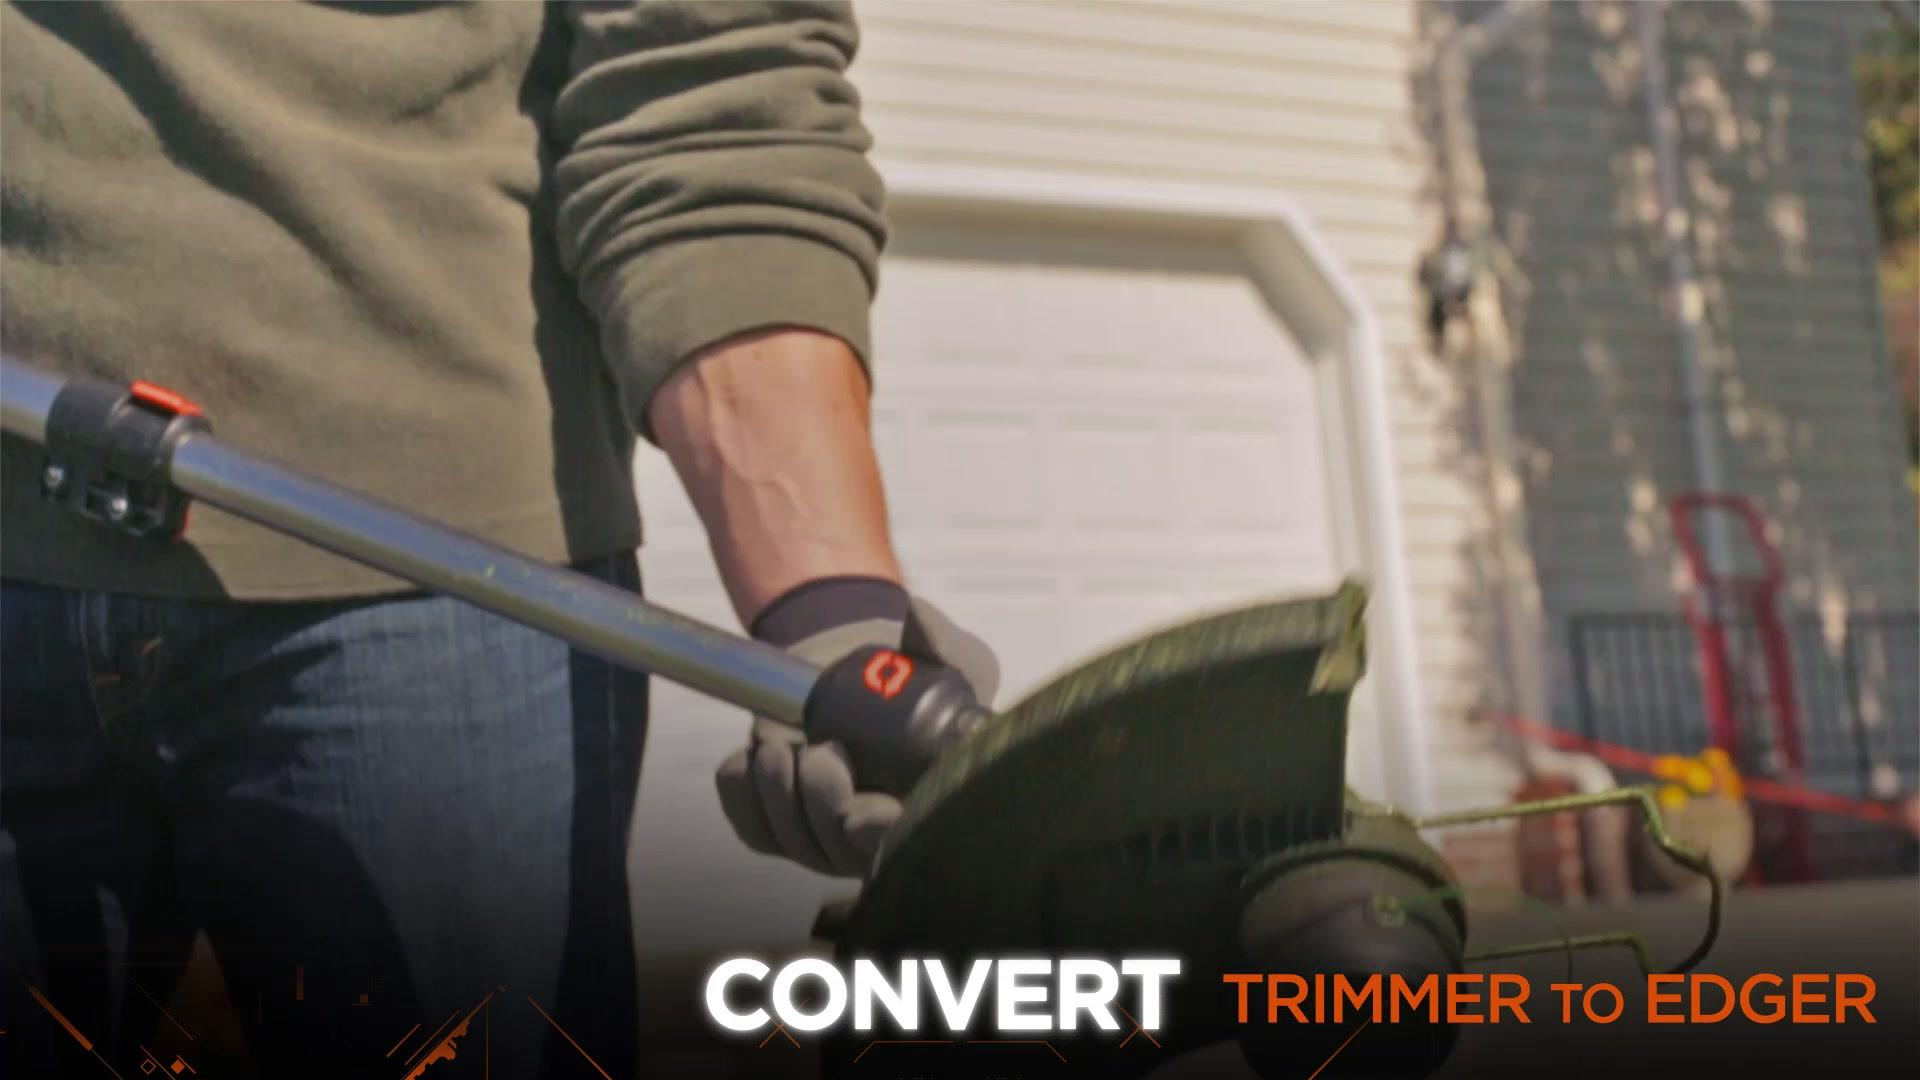 LST540 | 40V MAX* Lithium High Performance Trimmer/Edger with Brushless Technology | BLACK+DECKER